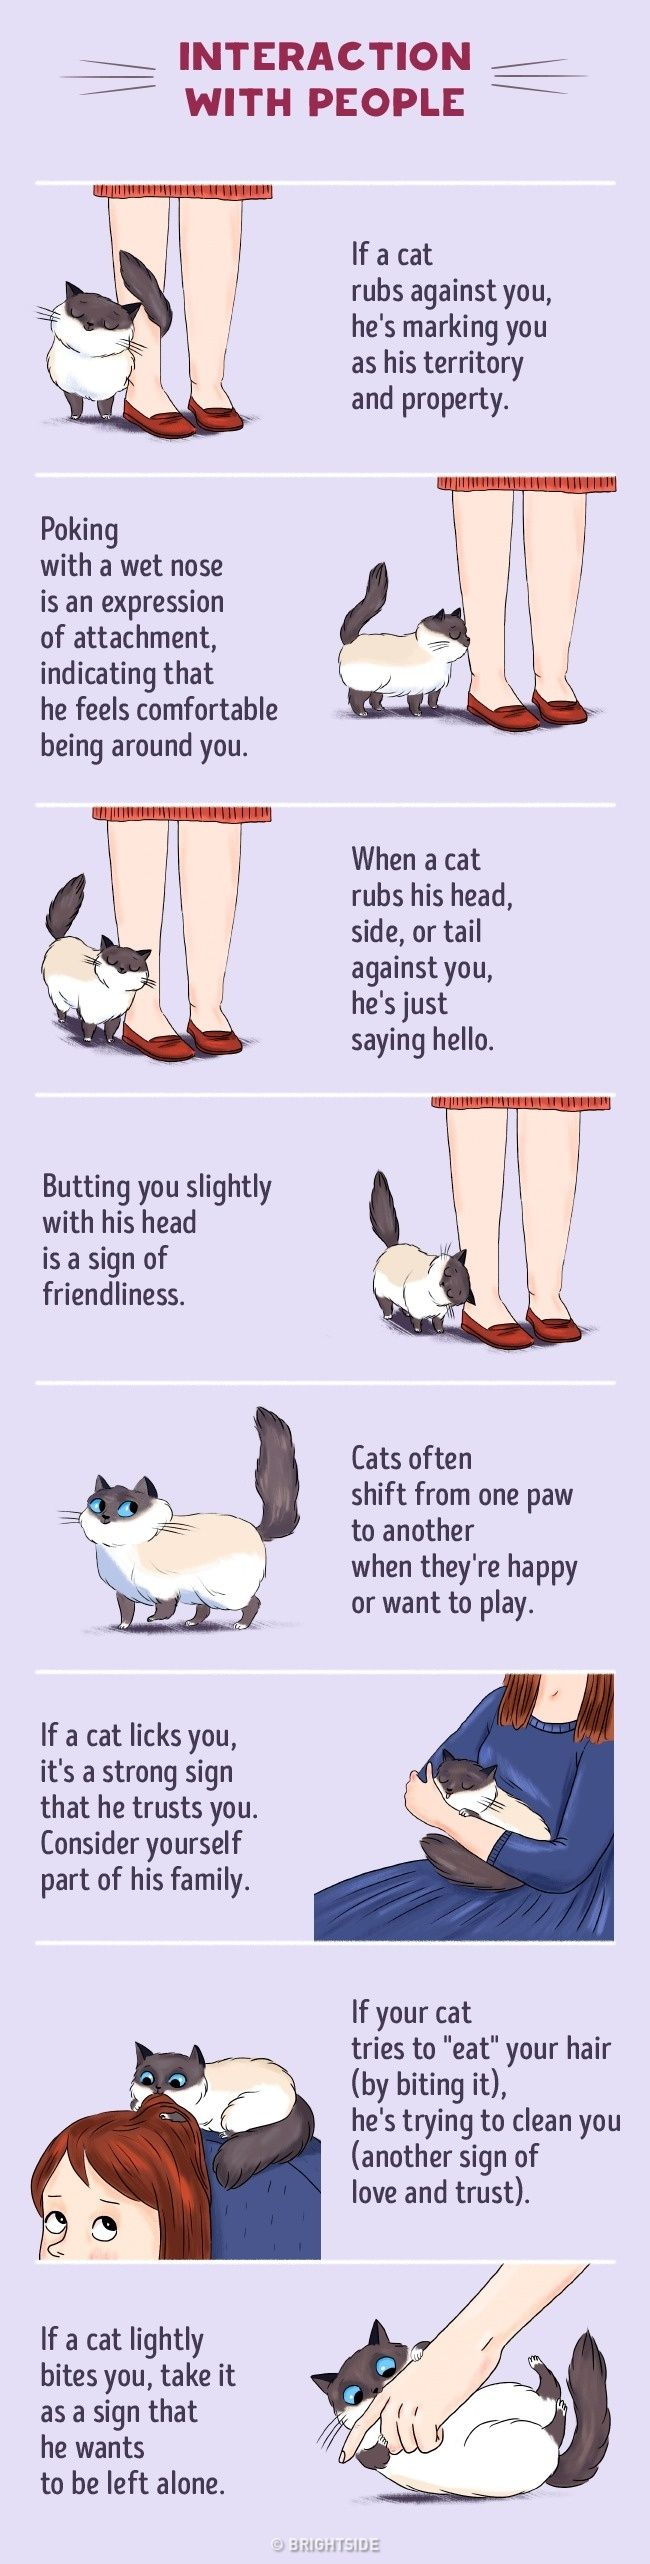 How to Find a Common Language With Your Cat